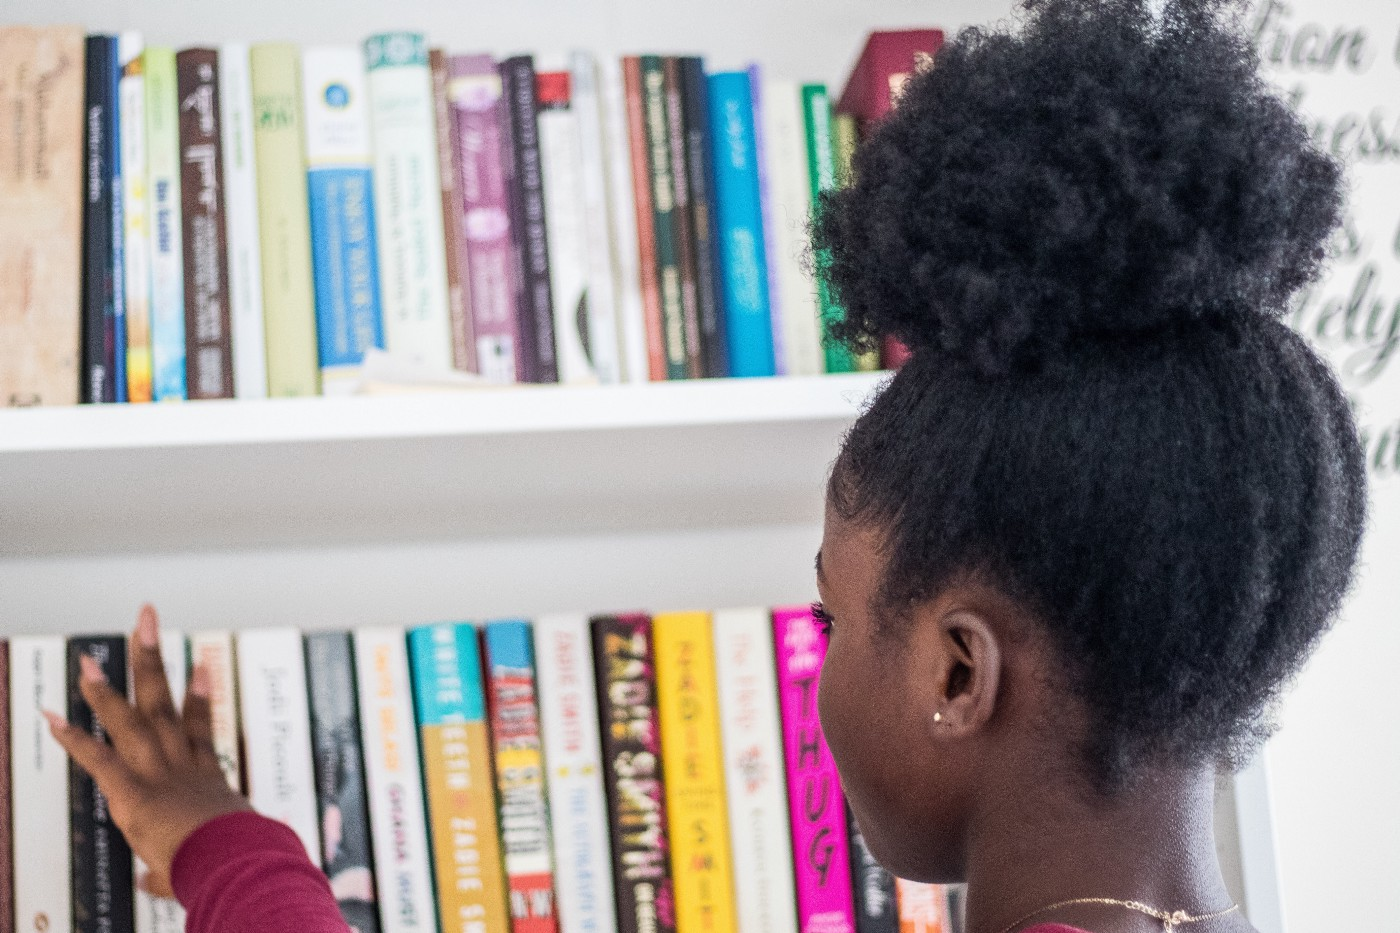 a young Black girl runs her fingers over the spines of books stacked on a white bookshelf